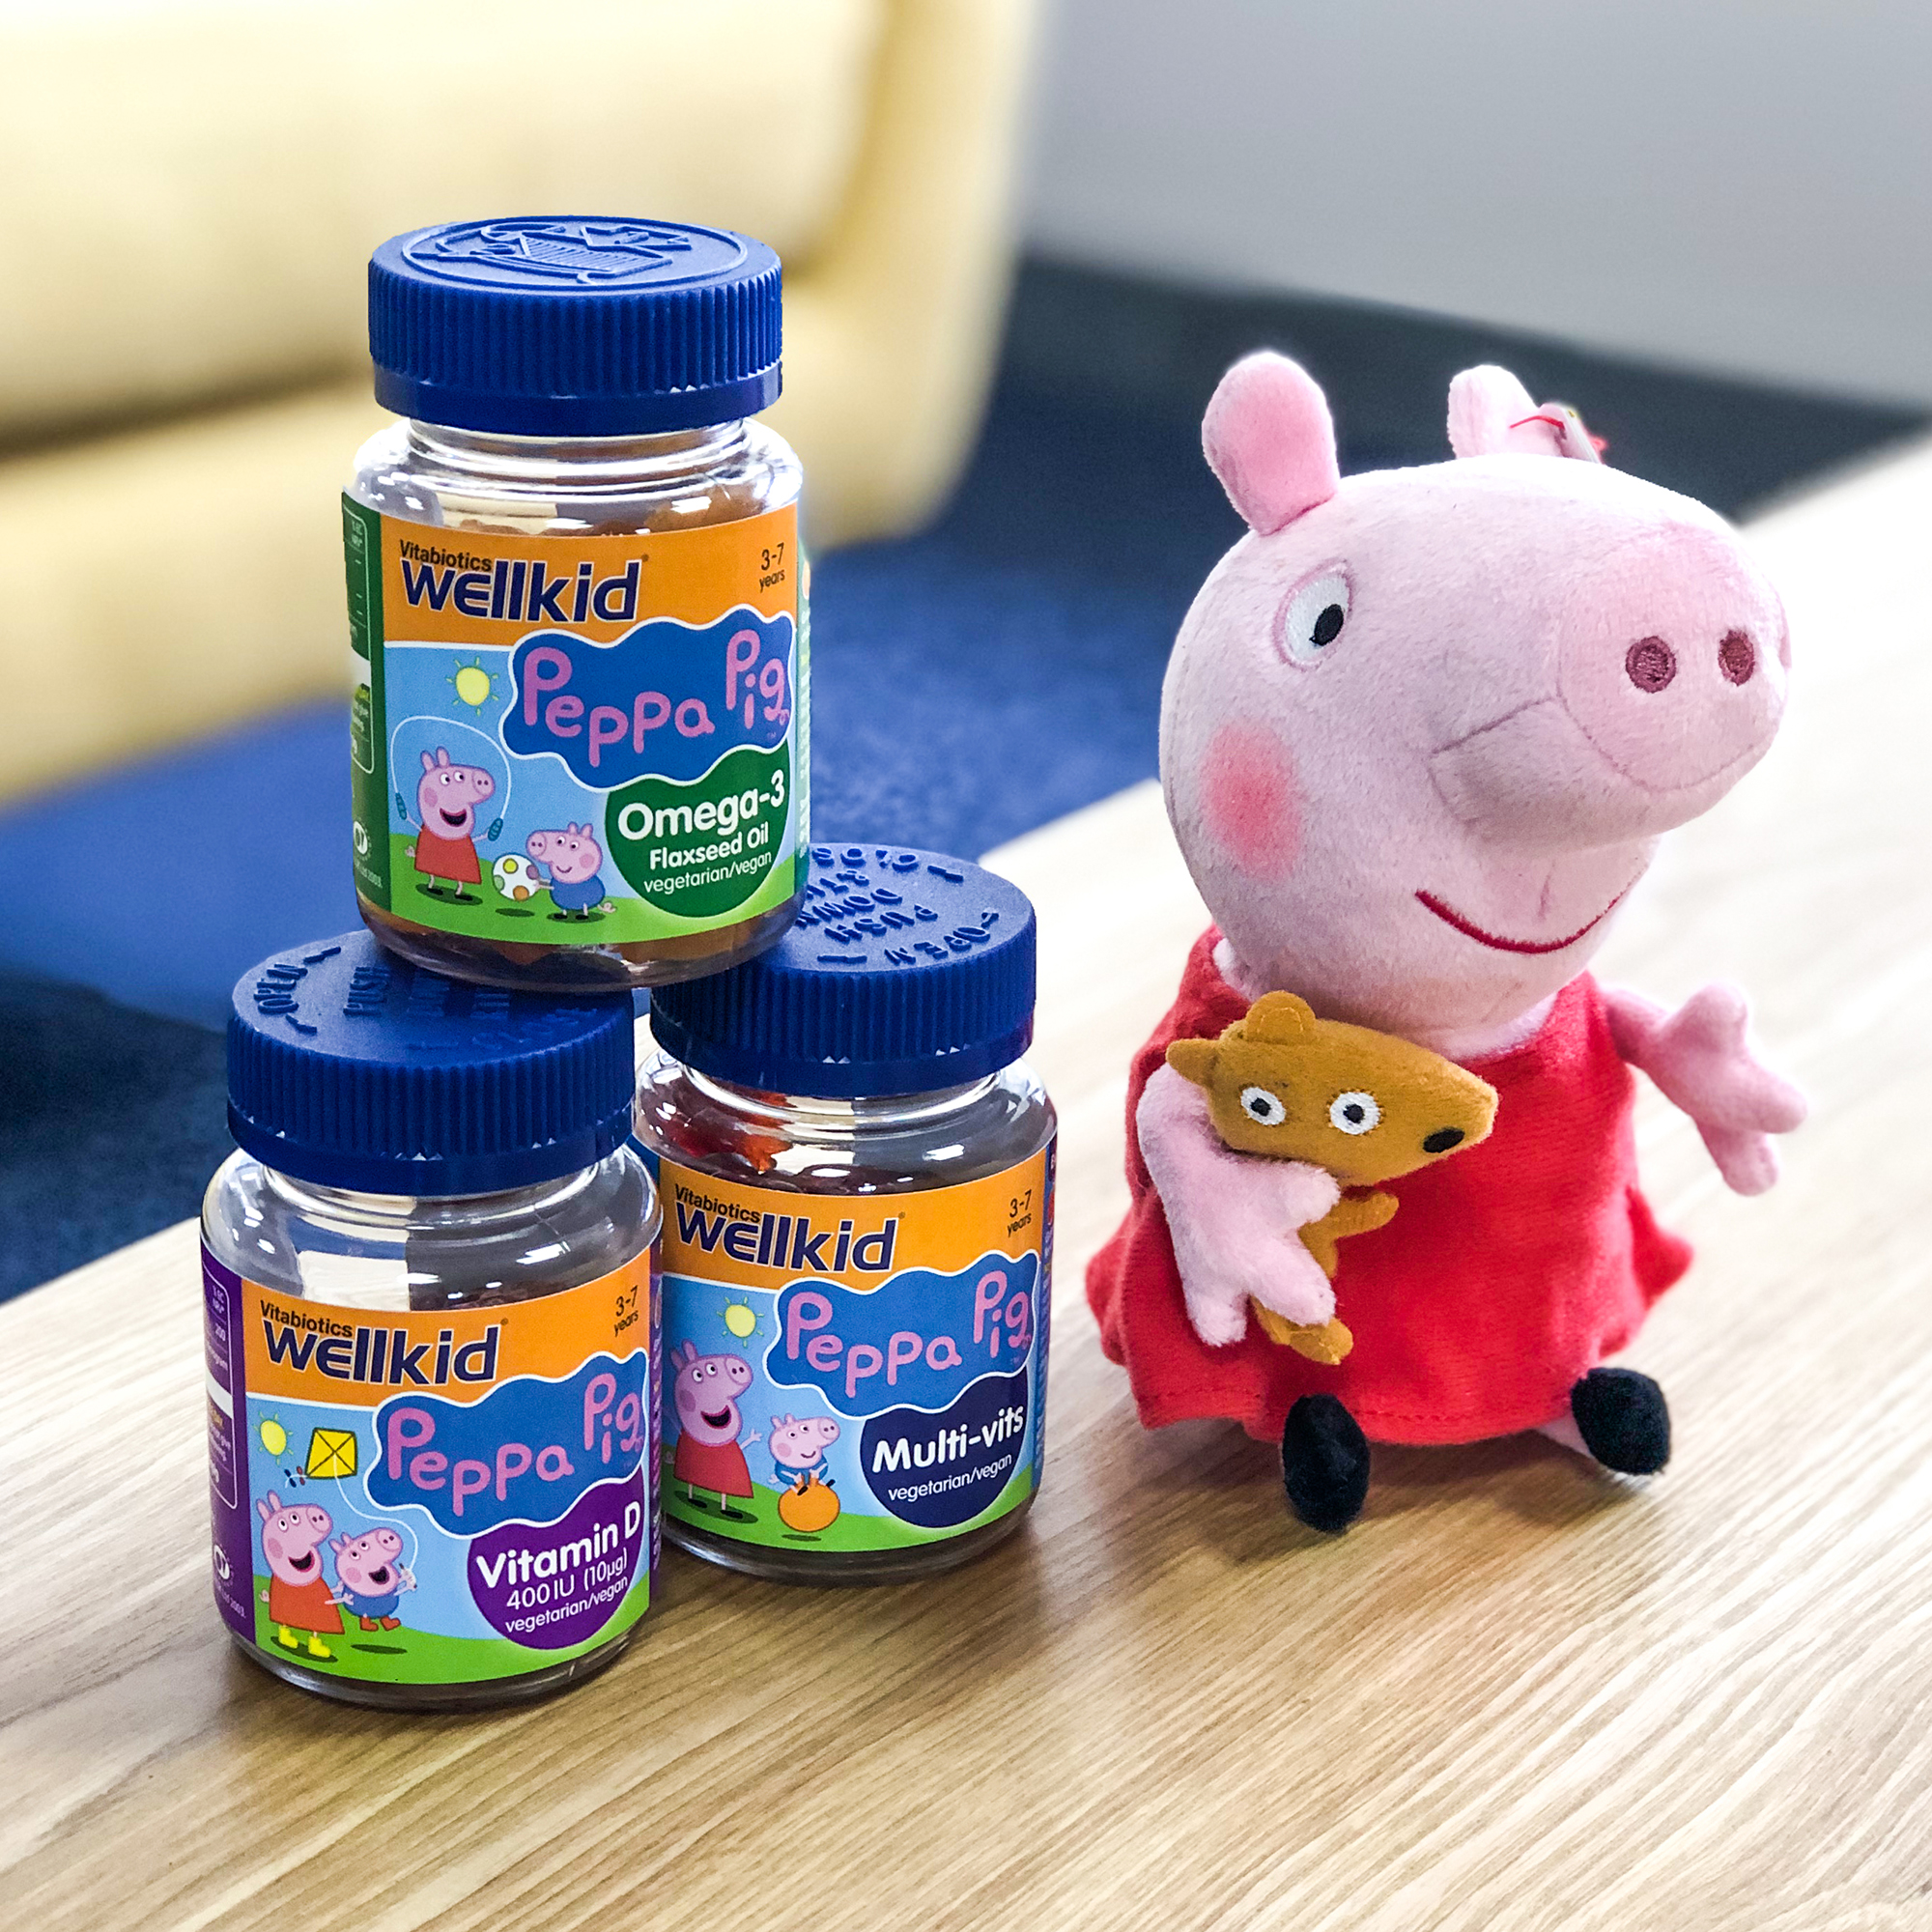 Wellkid Peppa Pig multi vitamins